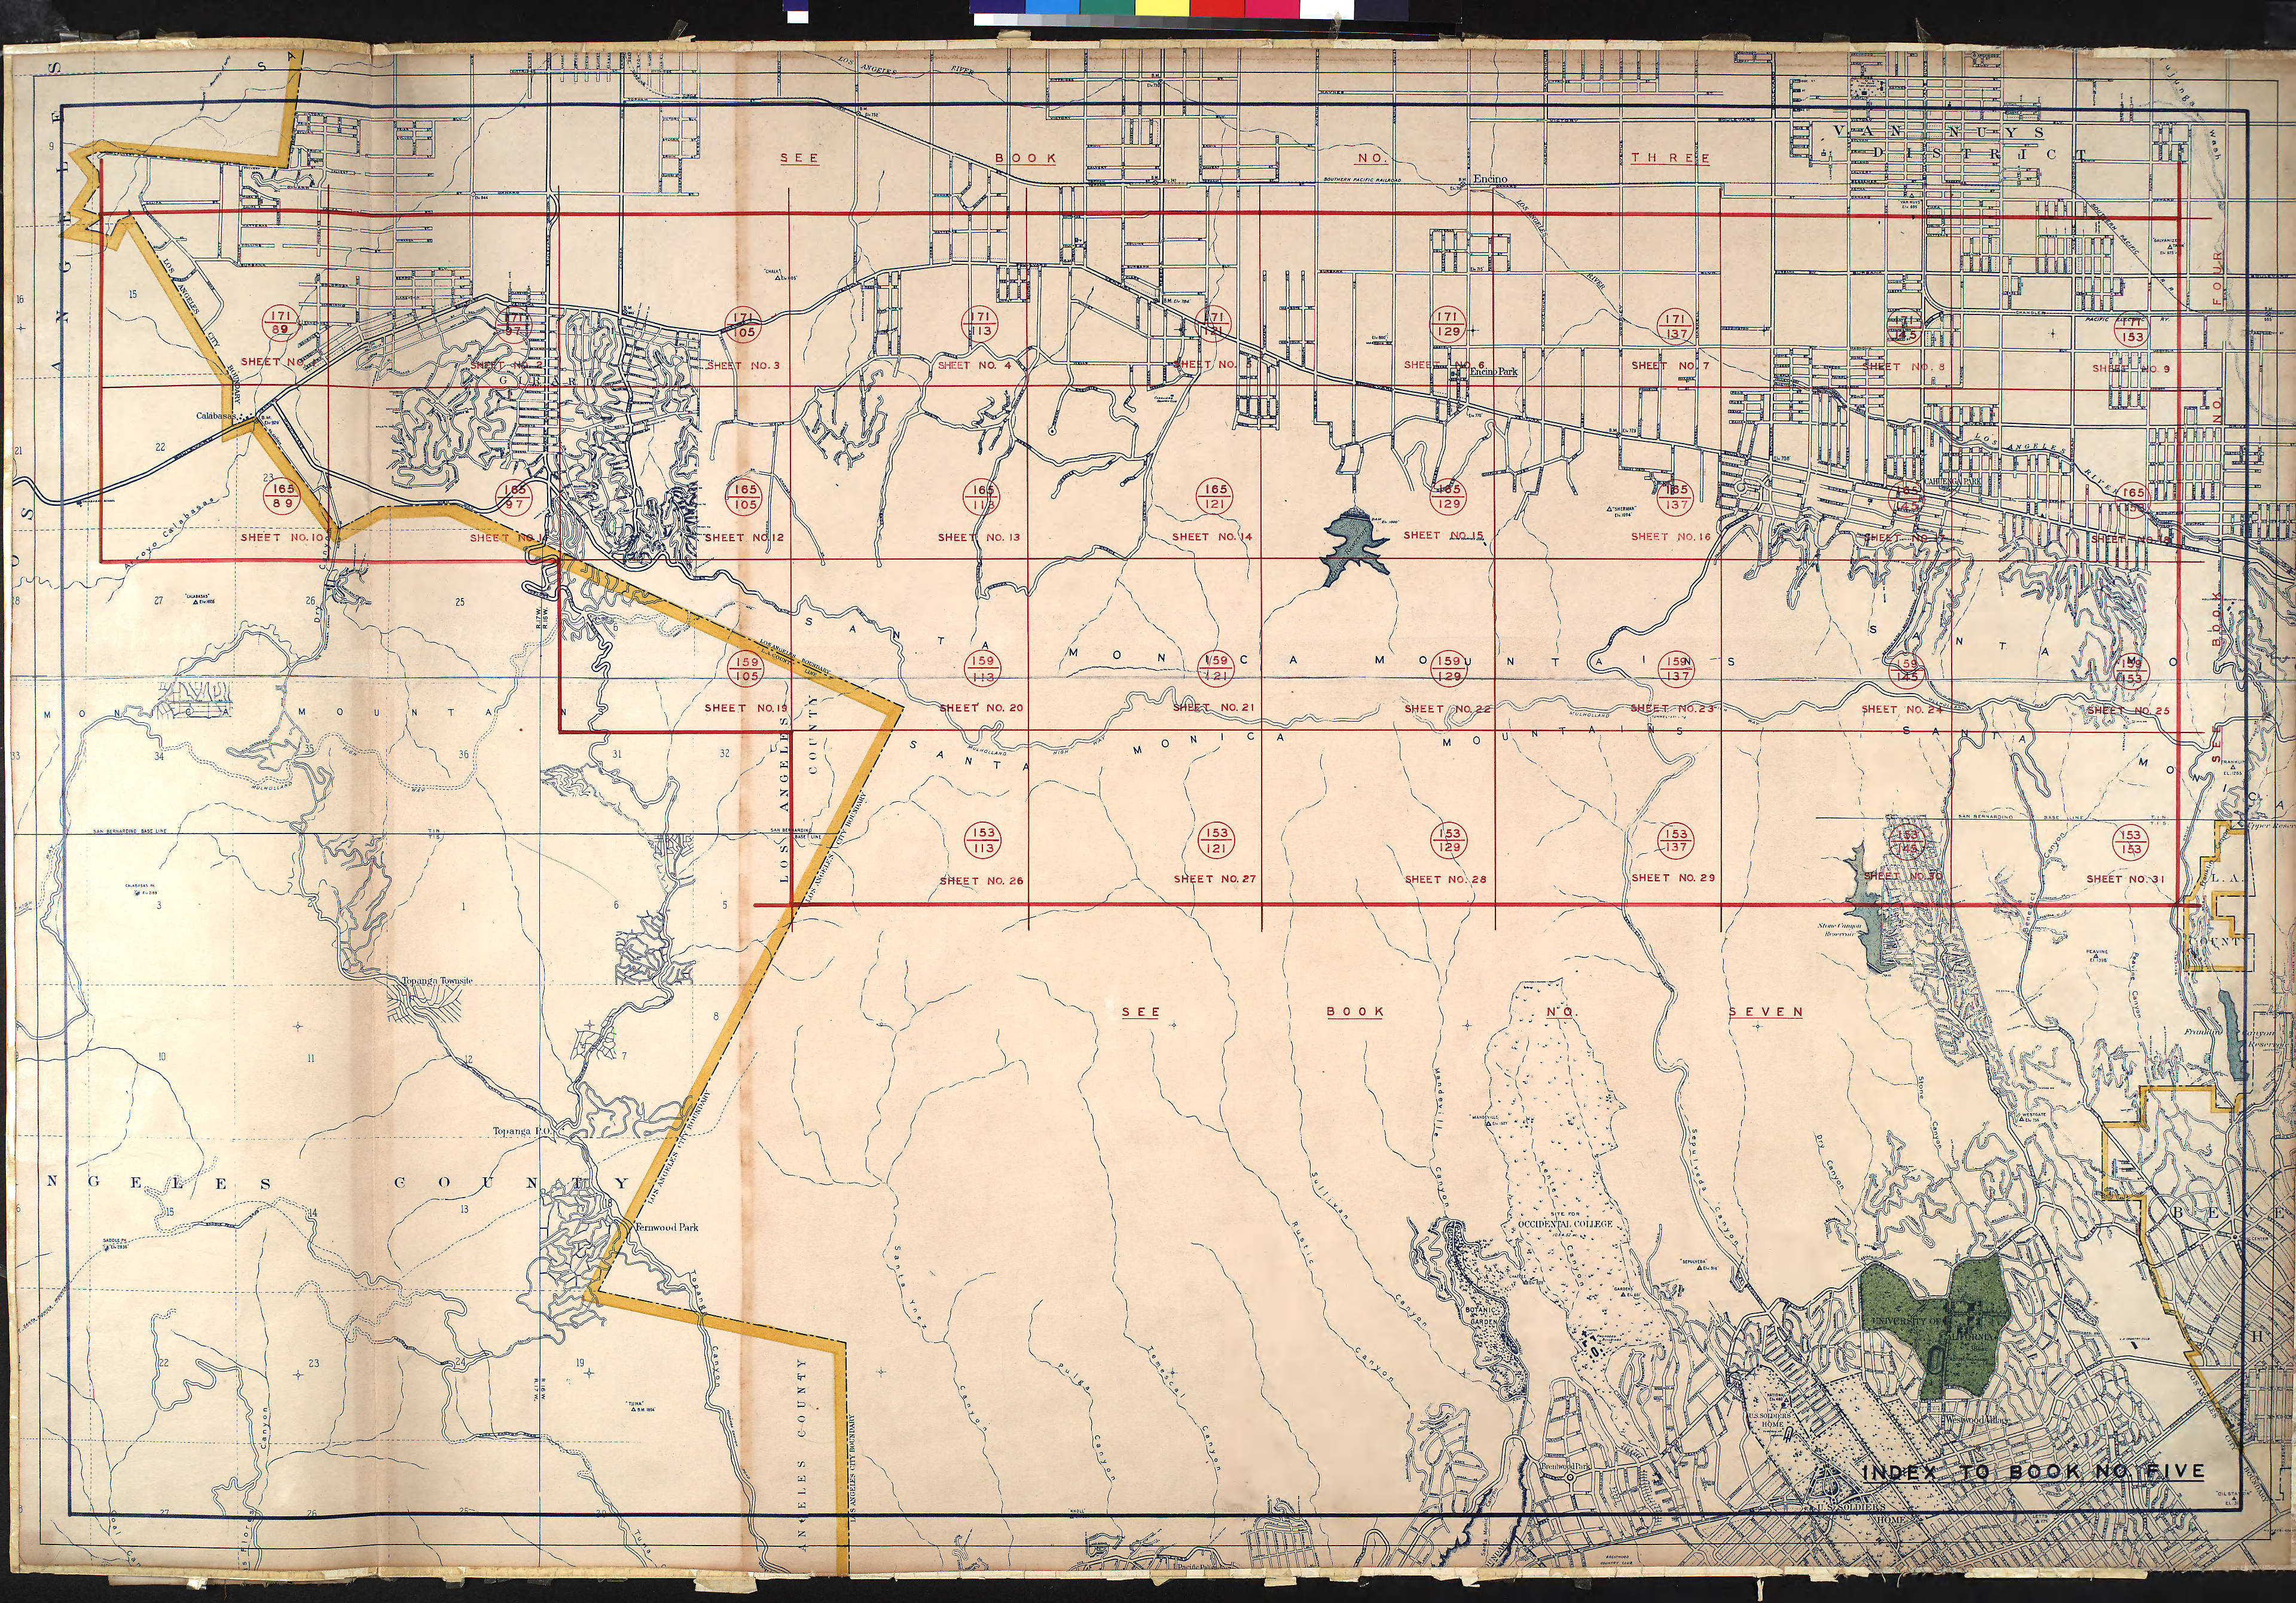 City Of Los Angeles Organizational Chart: WPA Land use survey map for the City of Los Angeles book 5 ,Chart